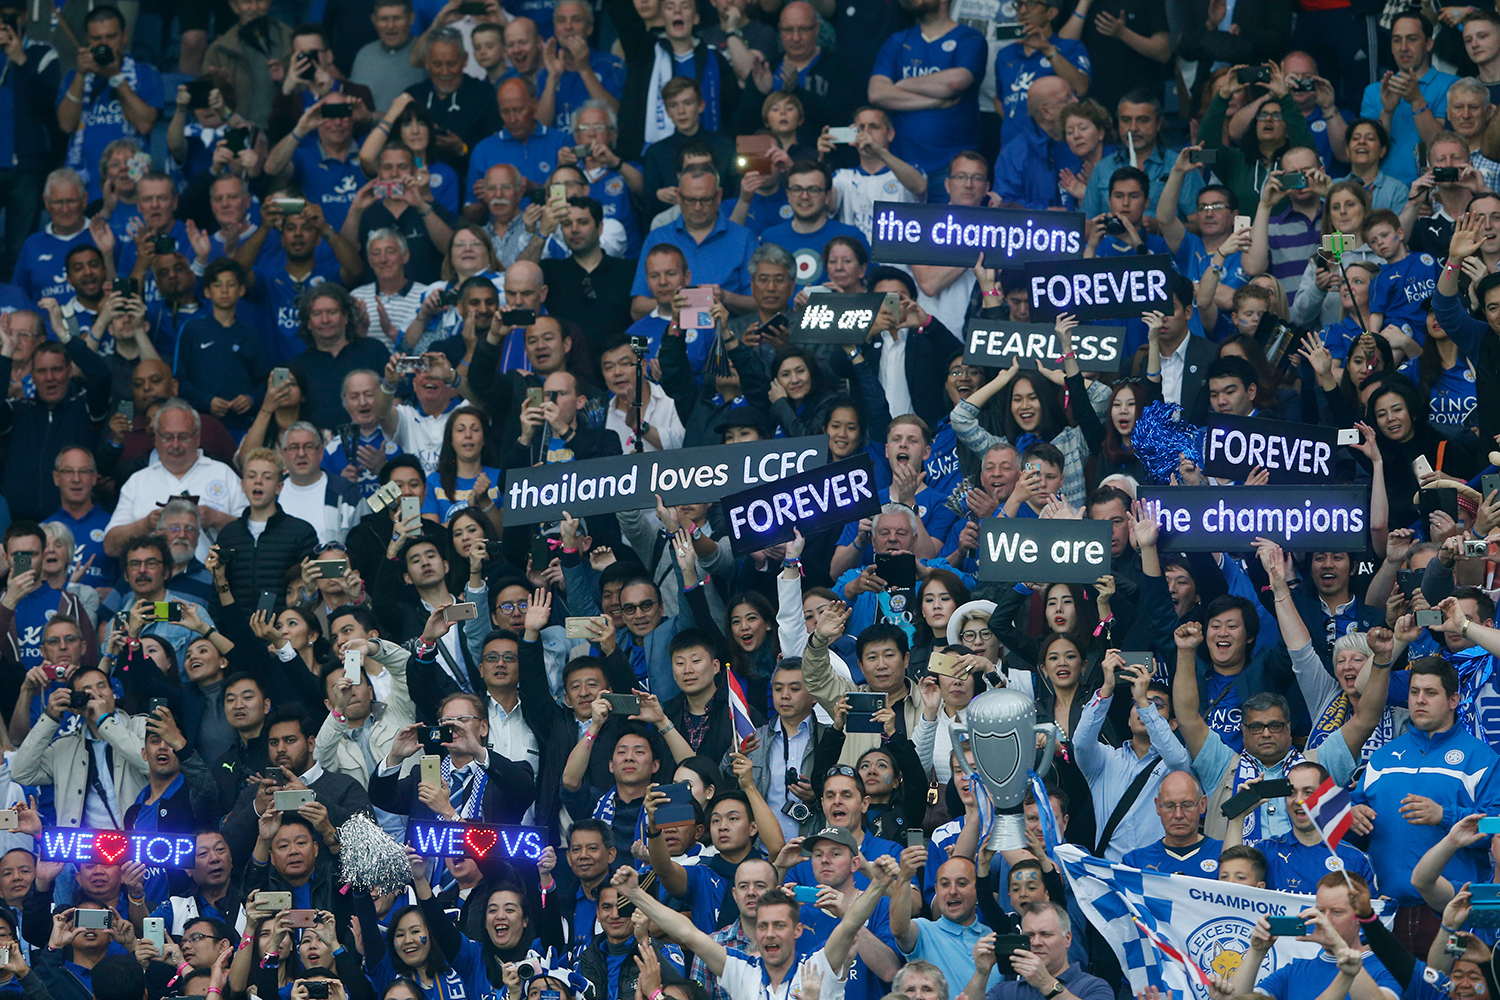 """""""Barcelona, we're coming for you!"""", chanted the Leicester fans, in a nod to next season's hotly anticipated Champions League campaign. — Reuters"""